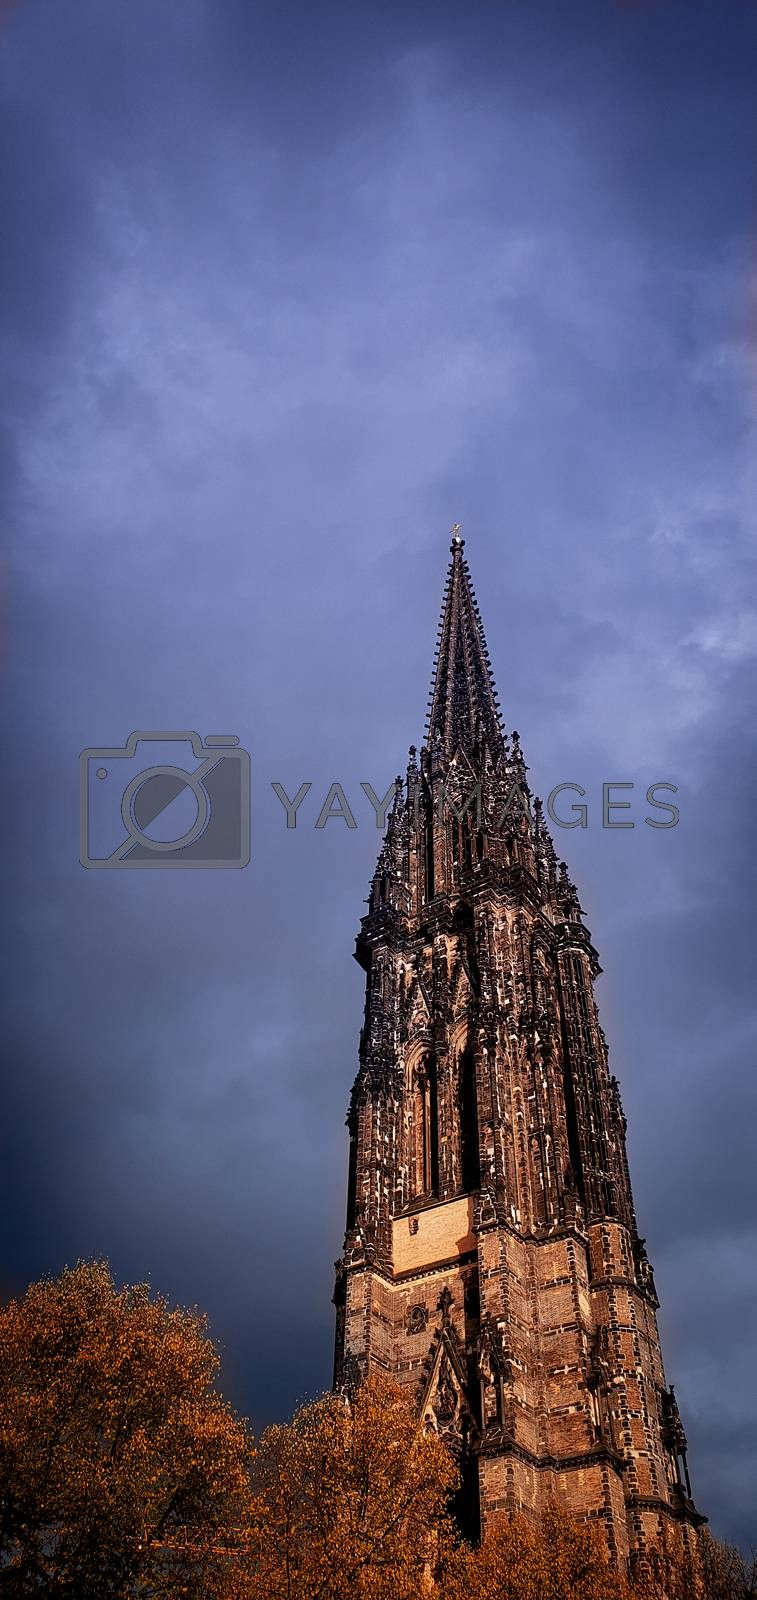 The burned spire of St. Nicholas church (St.-Nikolai-Kirche), a Gothic Revival cathedral who was one of the five Lutheran churches in Hamburg, Germany. Black church spire and stormy sky.